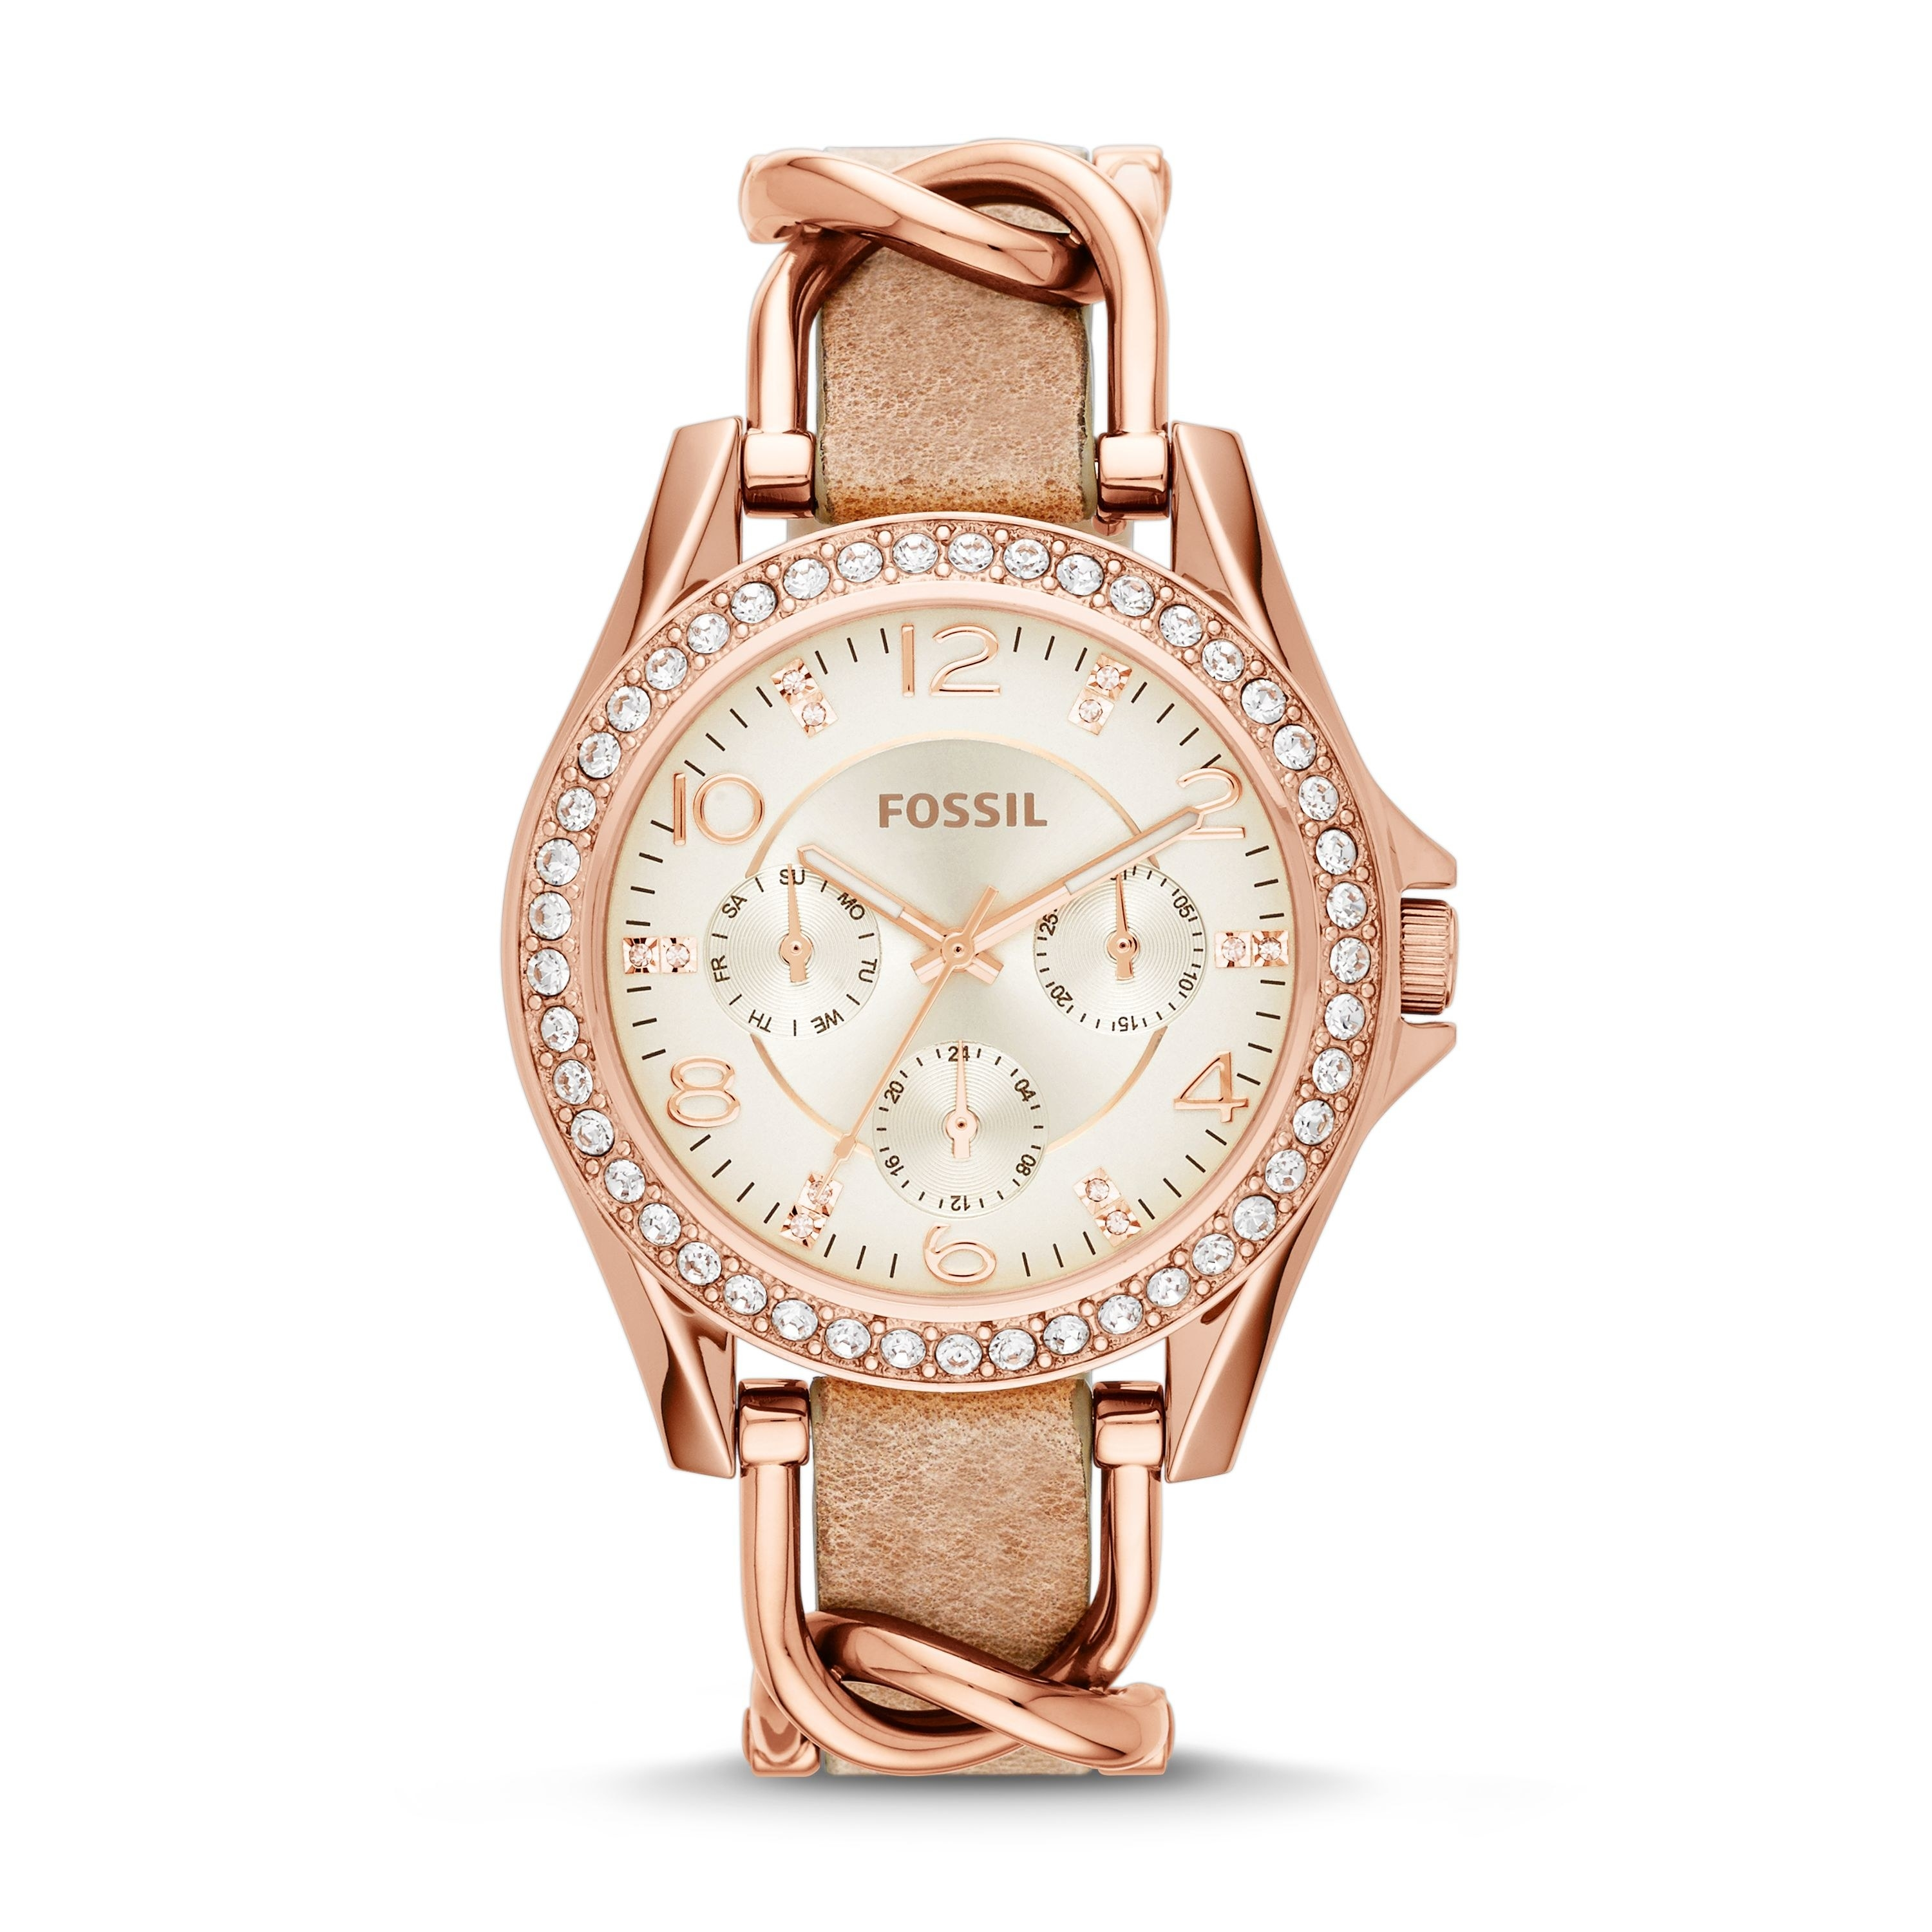 The rose gold watch